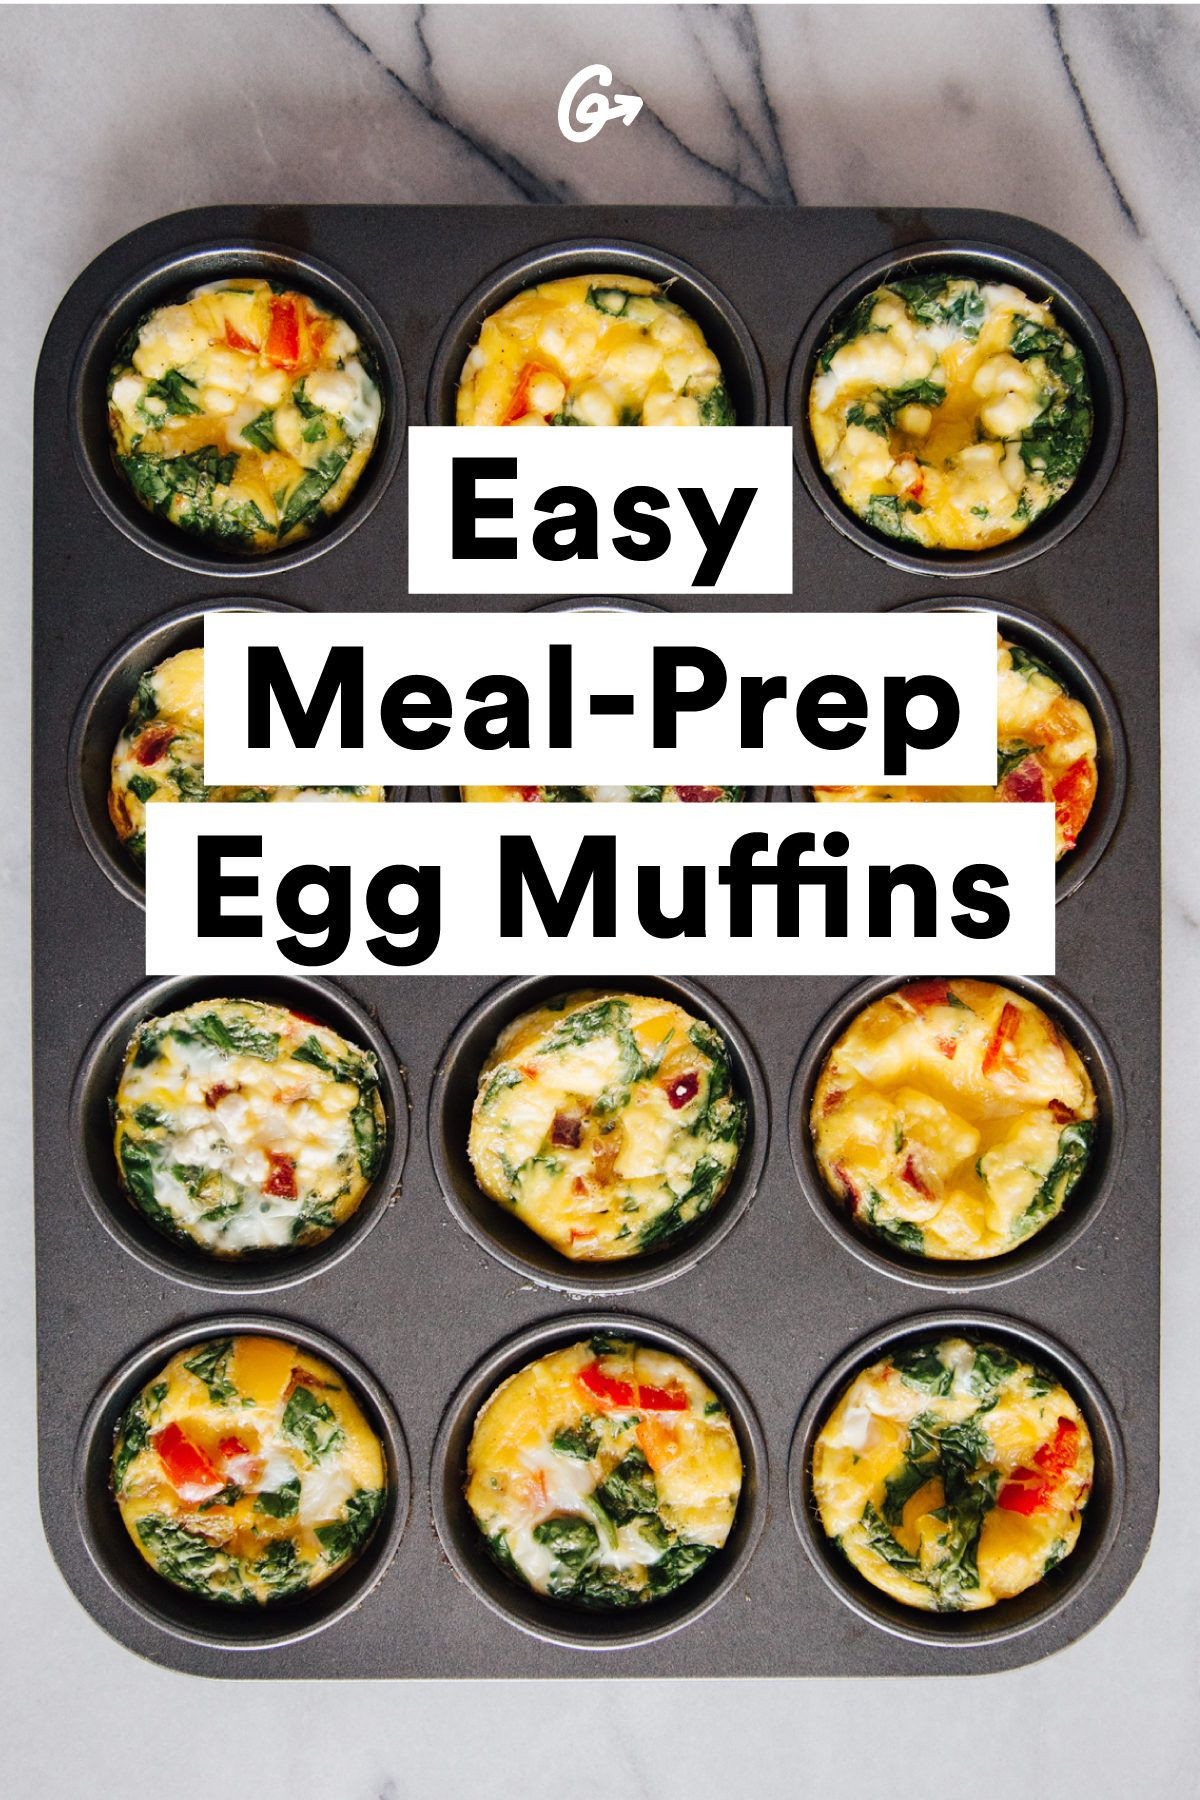 Healthy Meal Prep Breakfast  Make Eggs ce Eat Them All Week Without Getting Bored